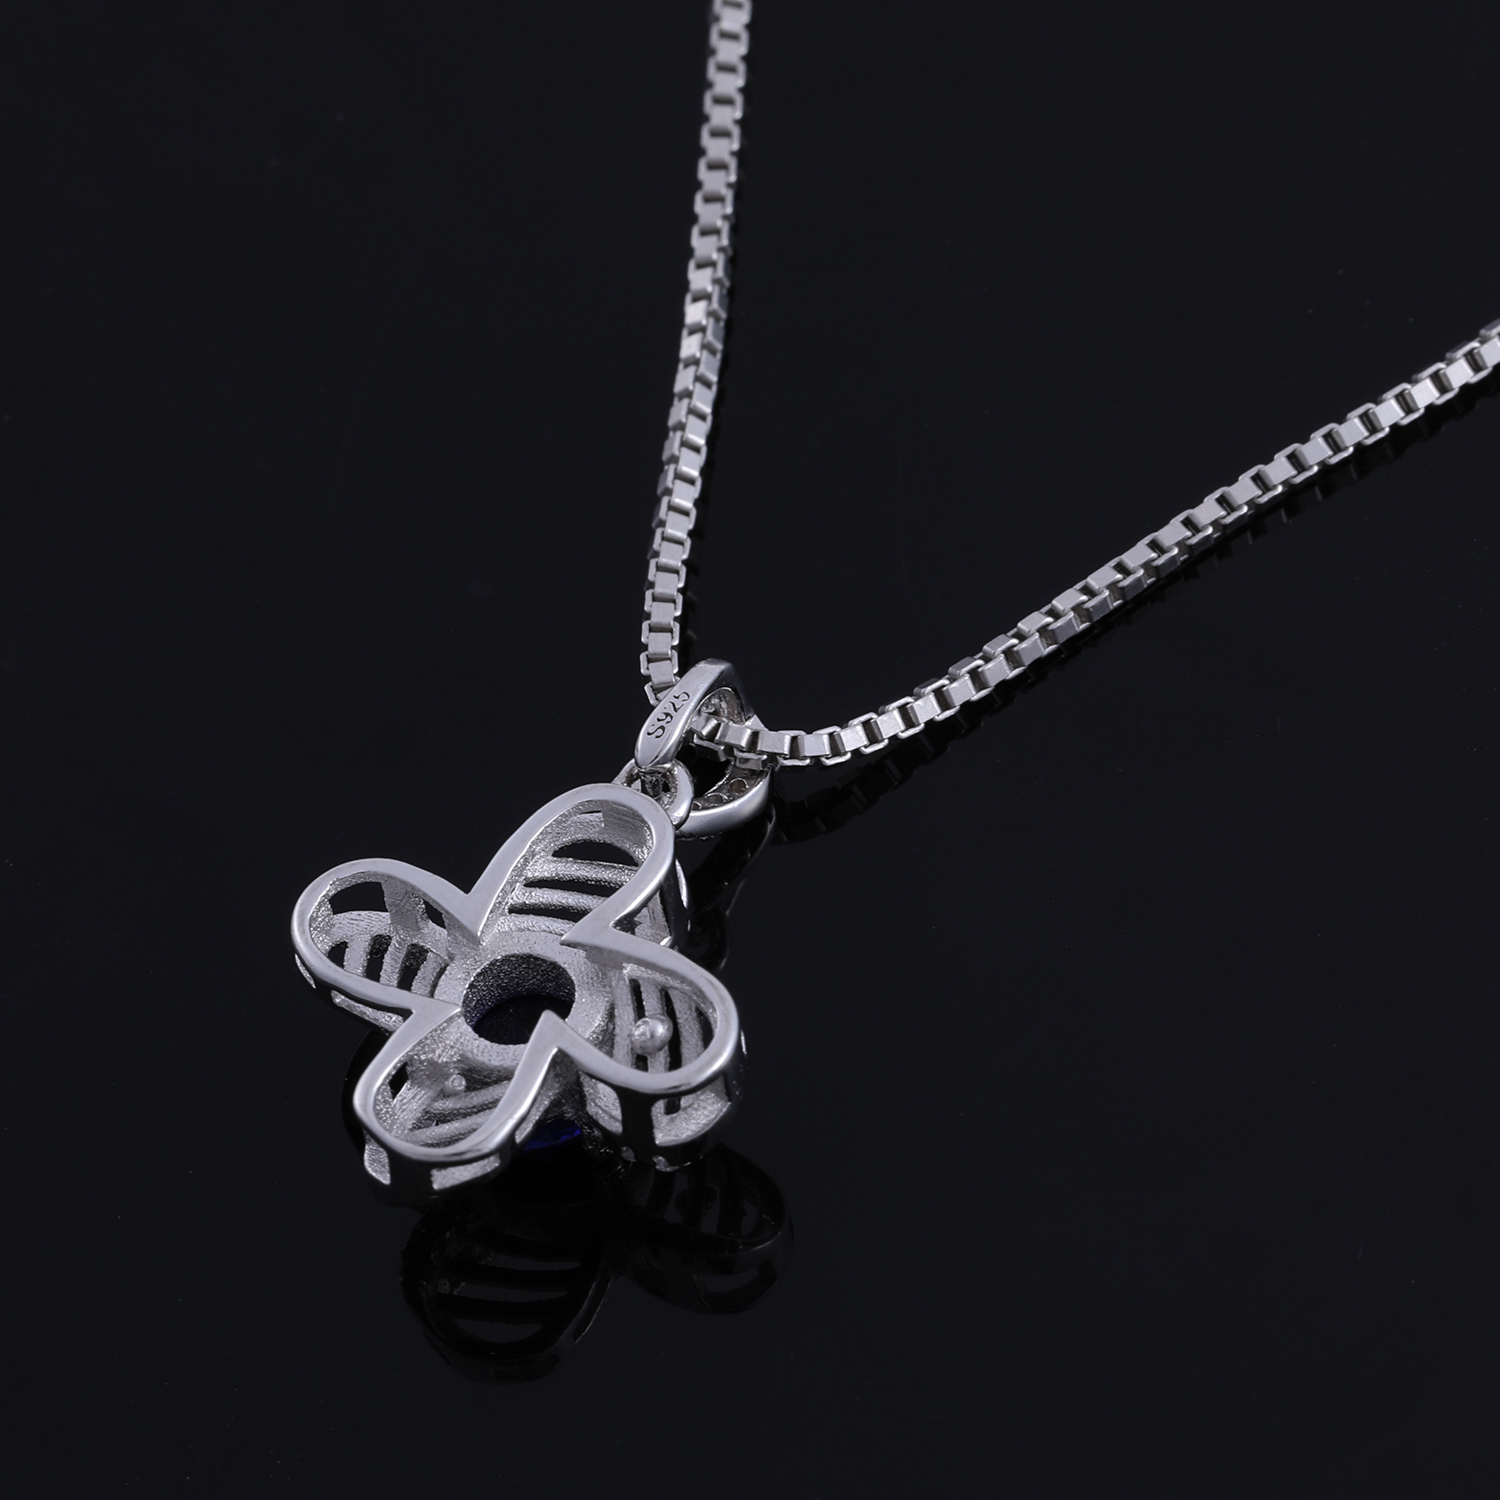 2018 Latest Fashion Charm Necklace Sterling Silver Crystal Diamond Jewelry Anniversary Chain